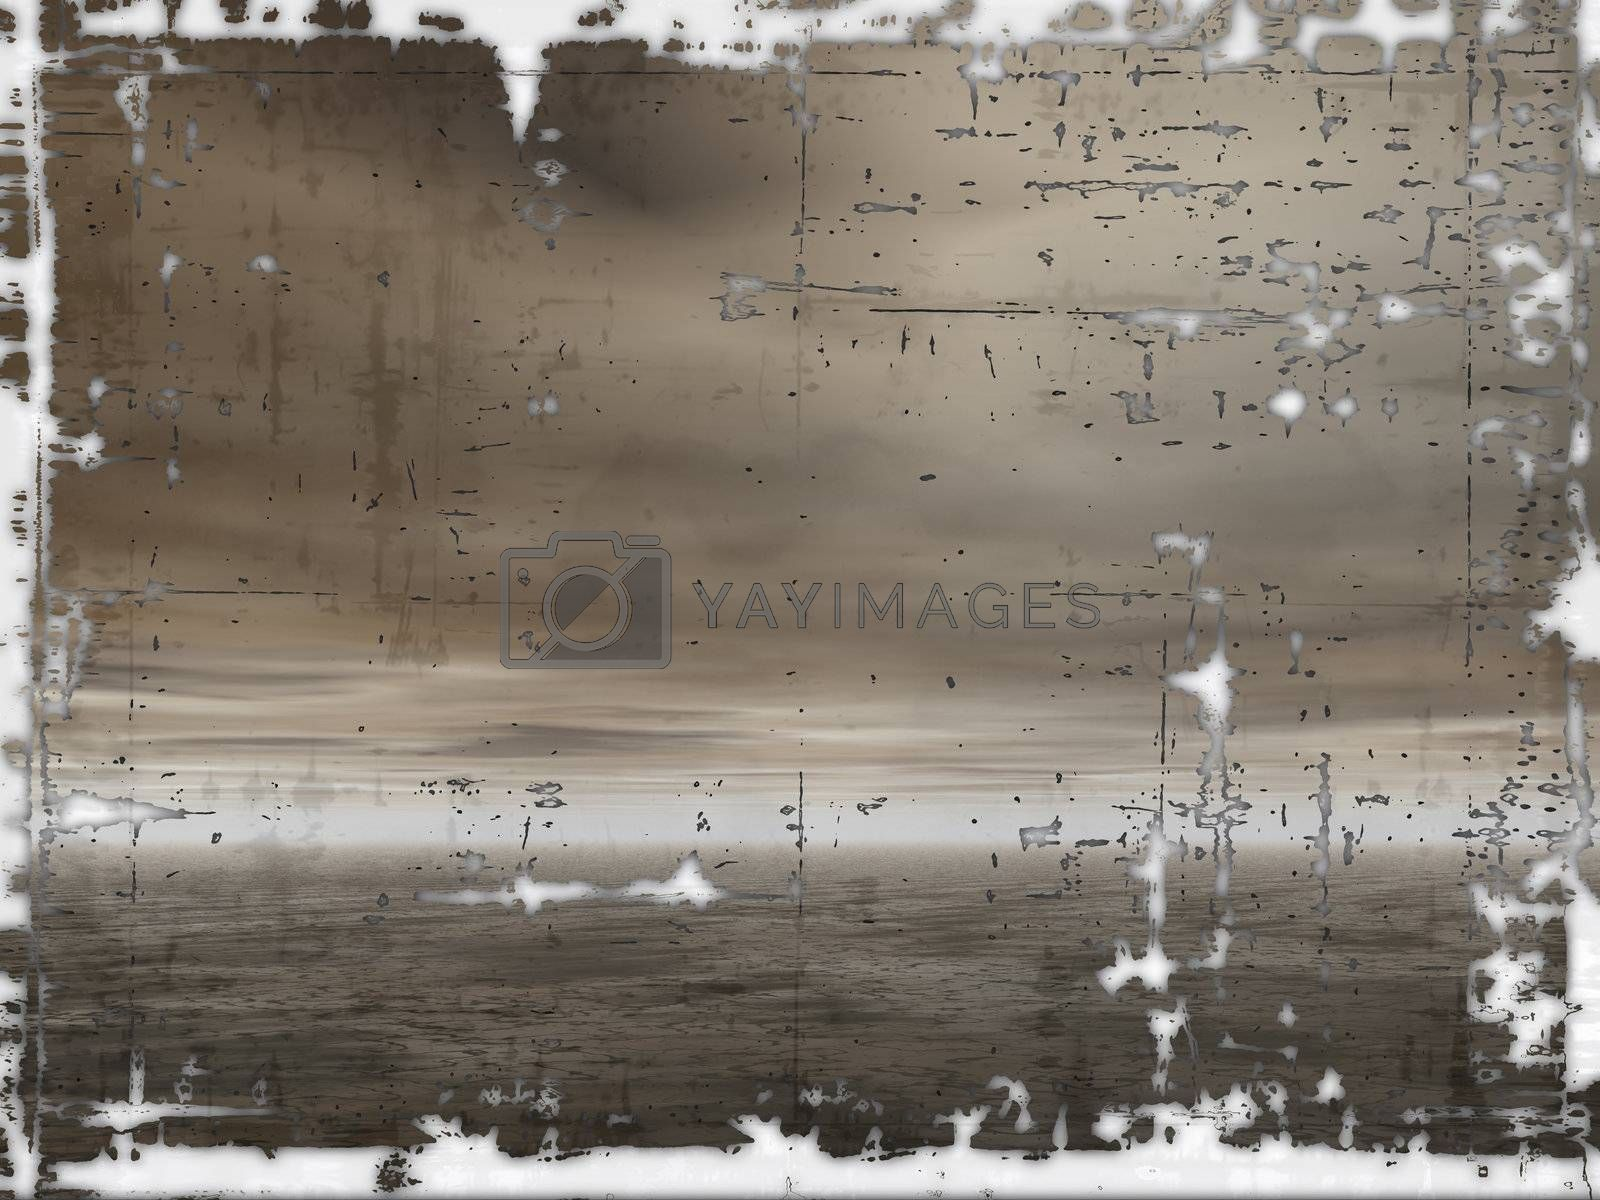 dark clouds and water on a grunge paper